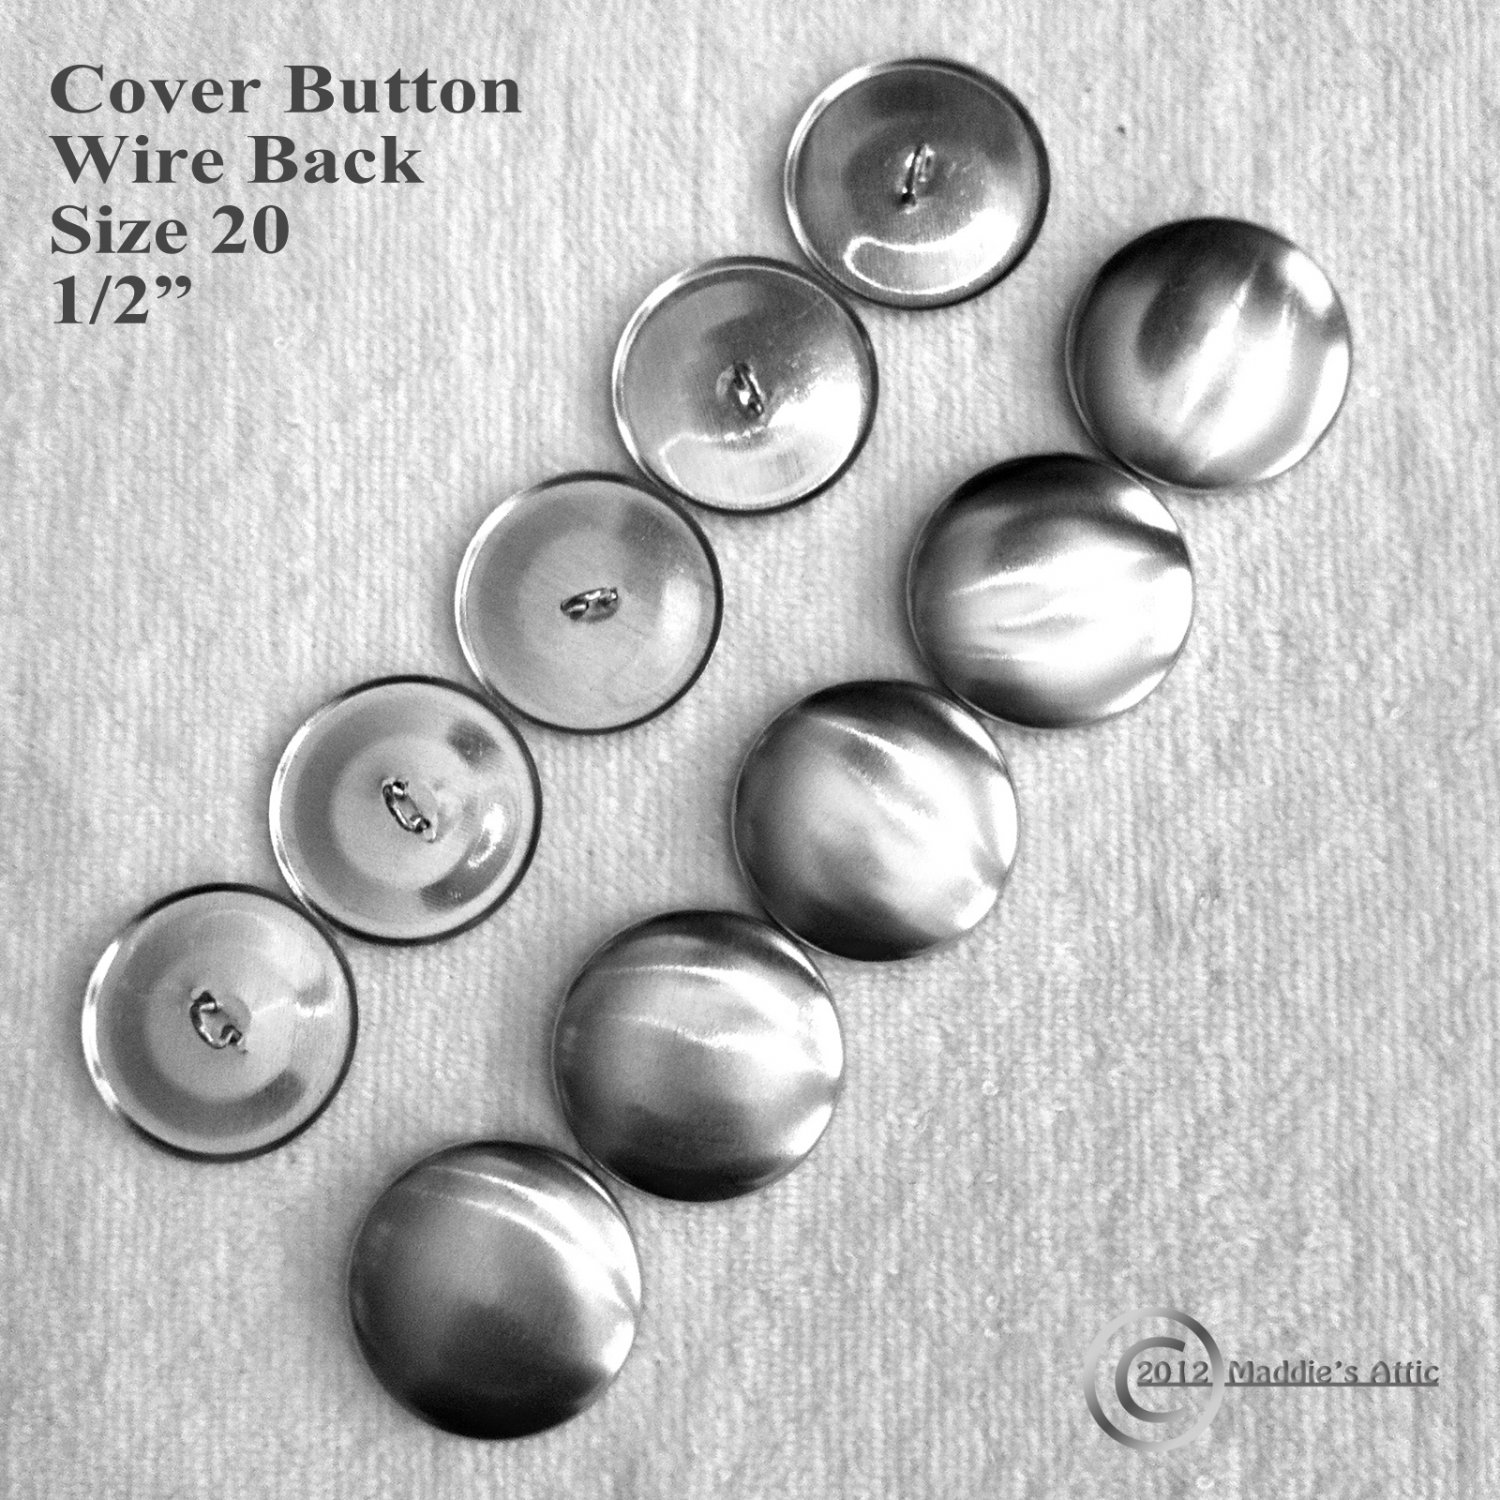 500 Wire Back Fabric Cover Buttons - Size 20 (1/2 inch)